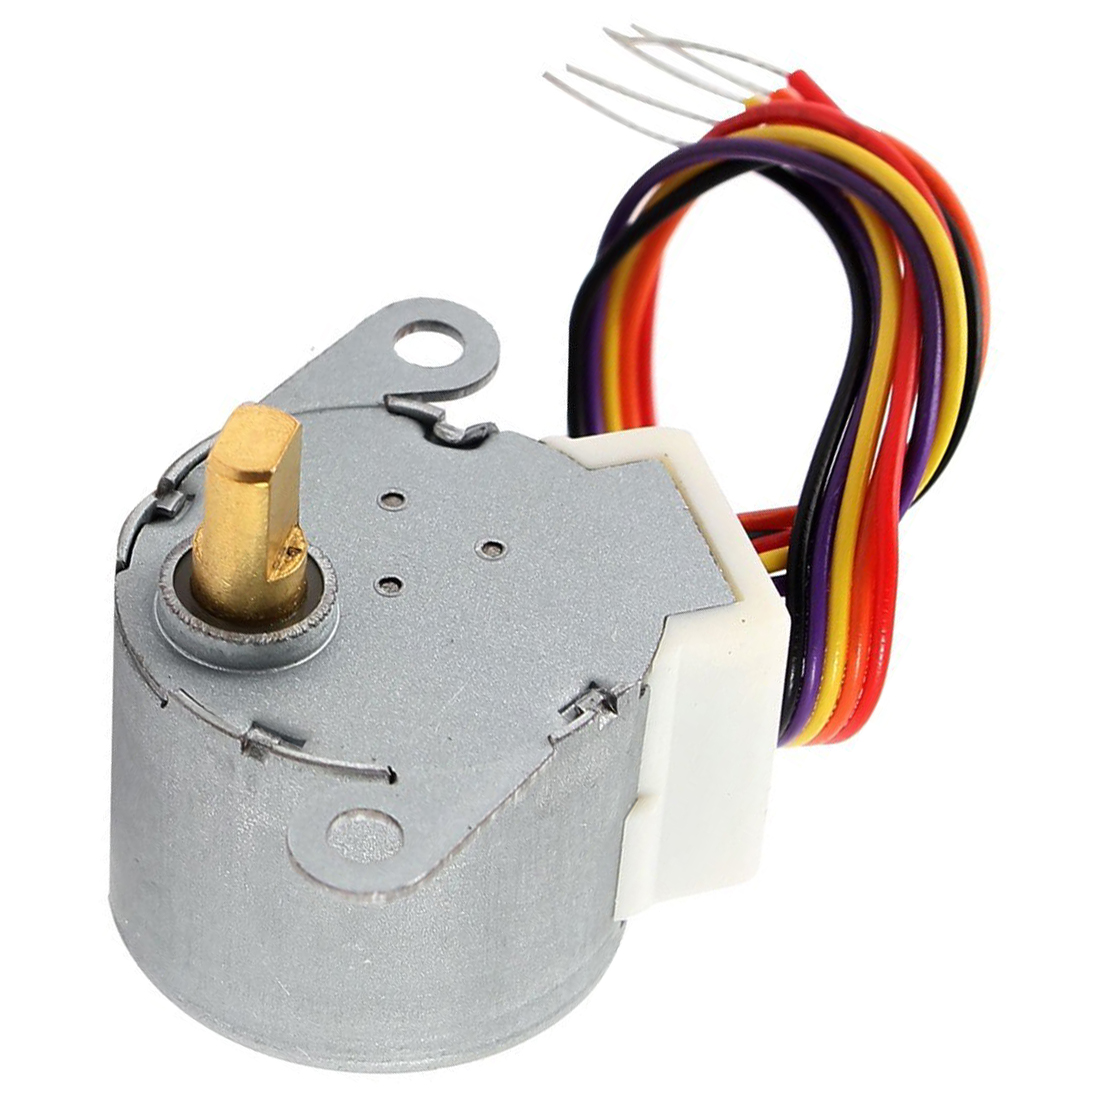 WSFS Hot <font><b>DC</b></font> <font><b>12V</b></font> CNC Reducing Stepping Stepper Motor 0.6A 10oz.in <font><b>24BYJ48</b></font> Silver image